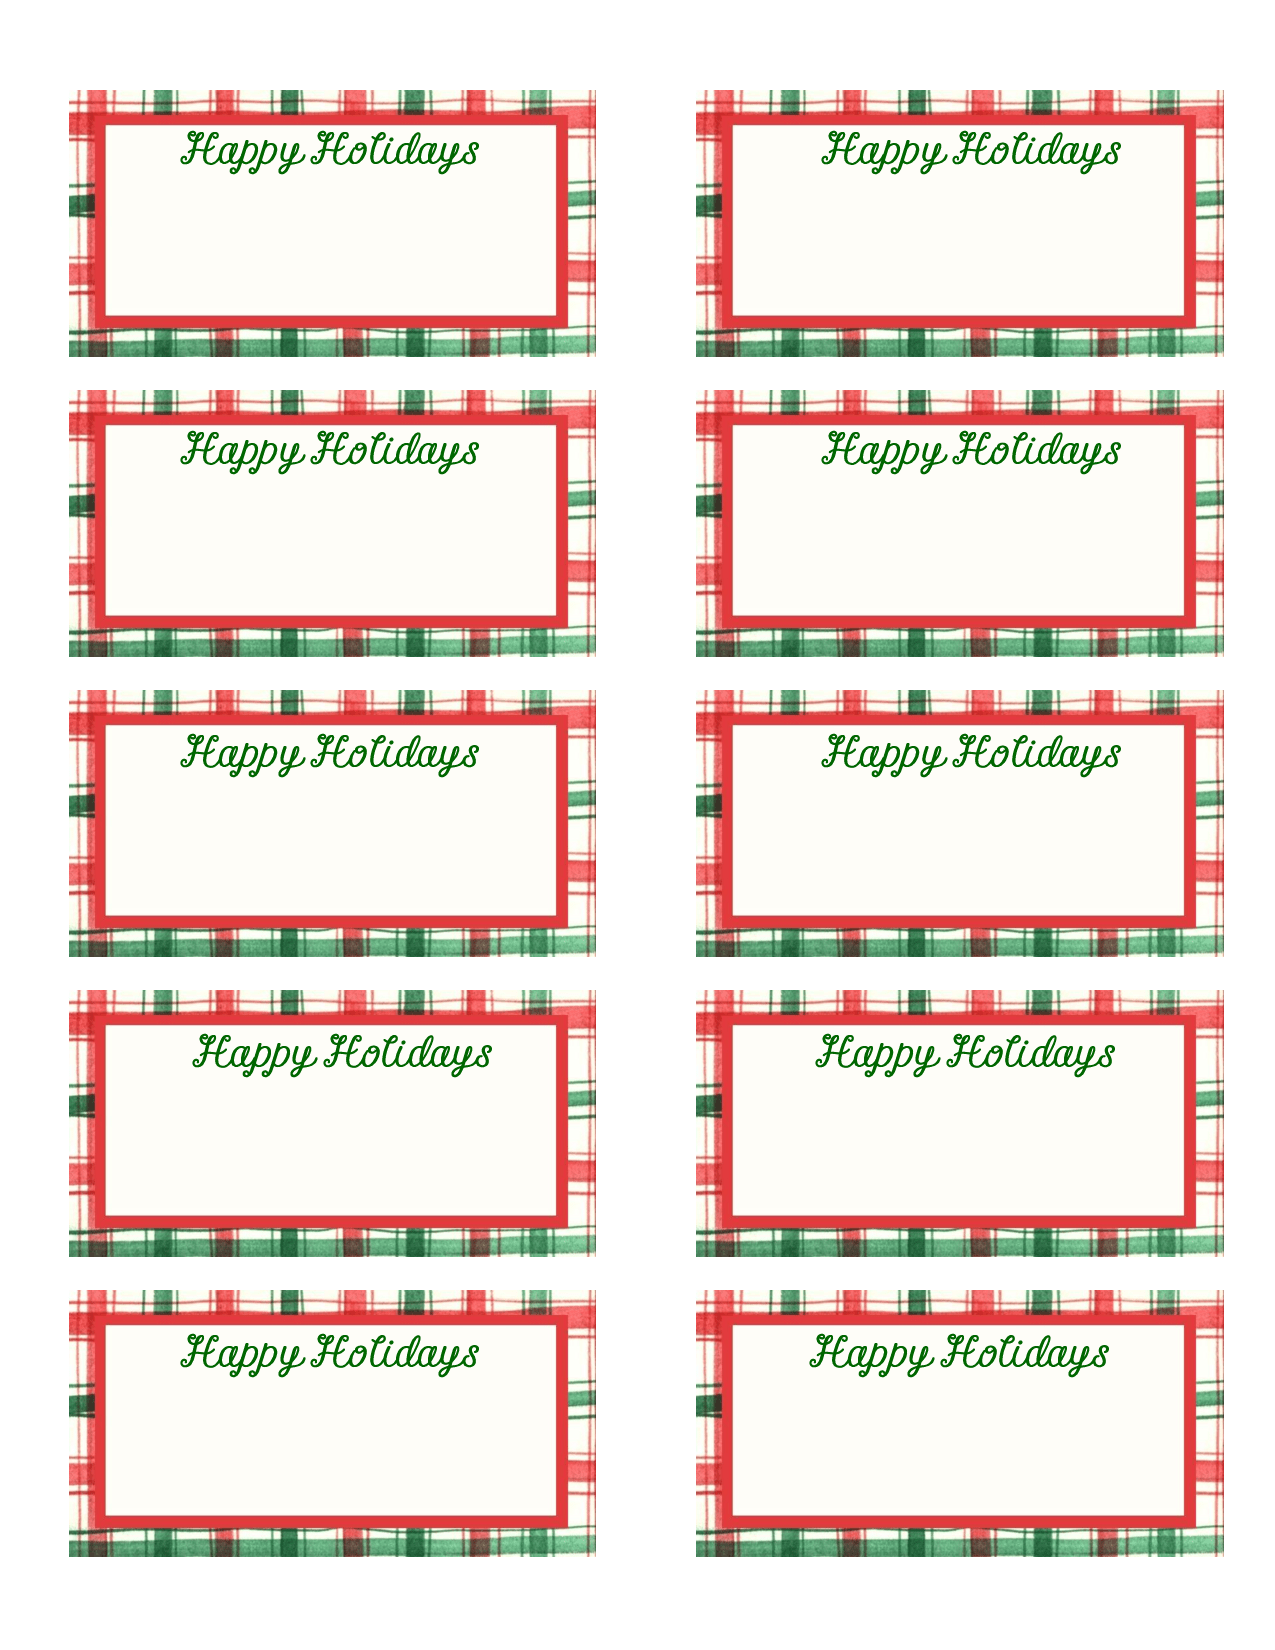 Address 5160 Template Label Avery Holiday